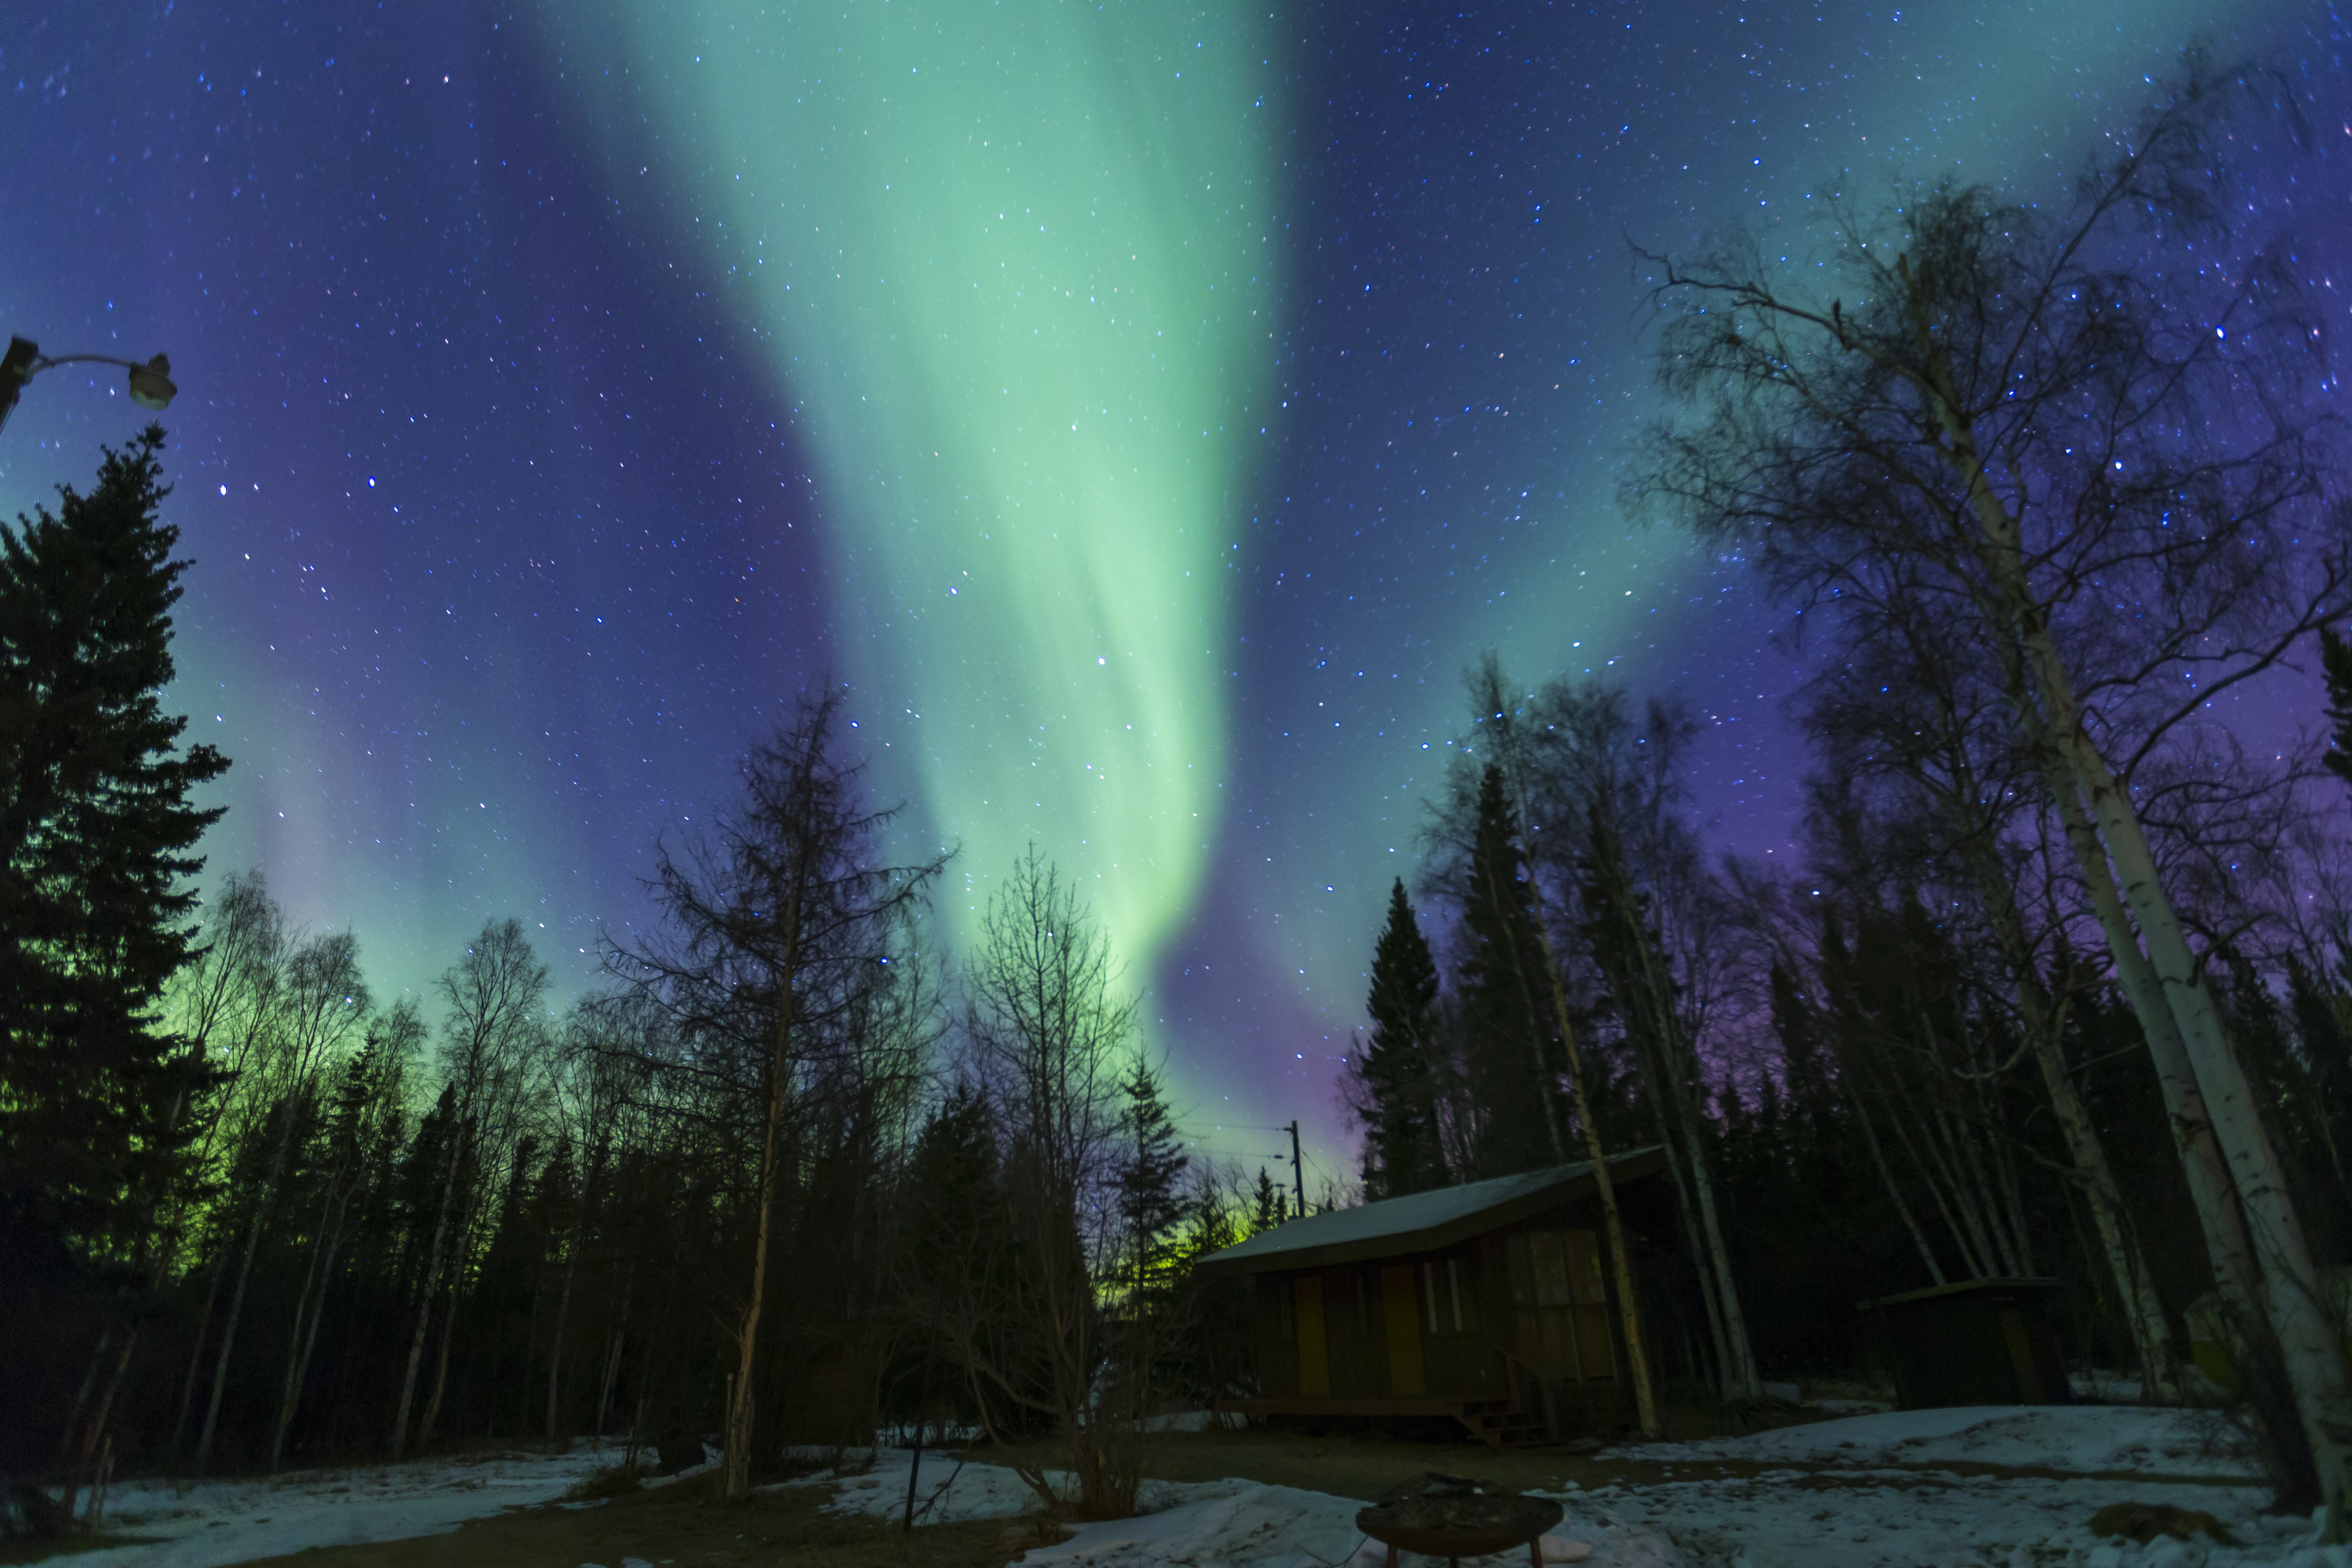 The aurora appeared in Fairbanks by the Birch Lake, on March 6. Photo by Xuan Ma.